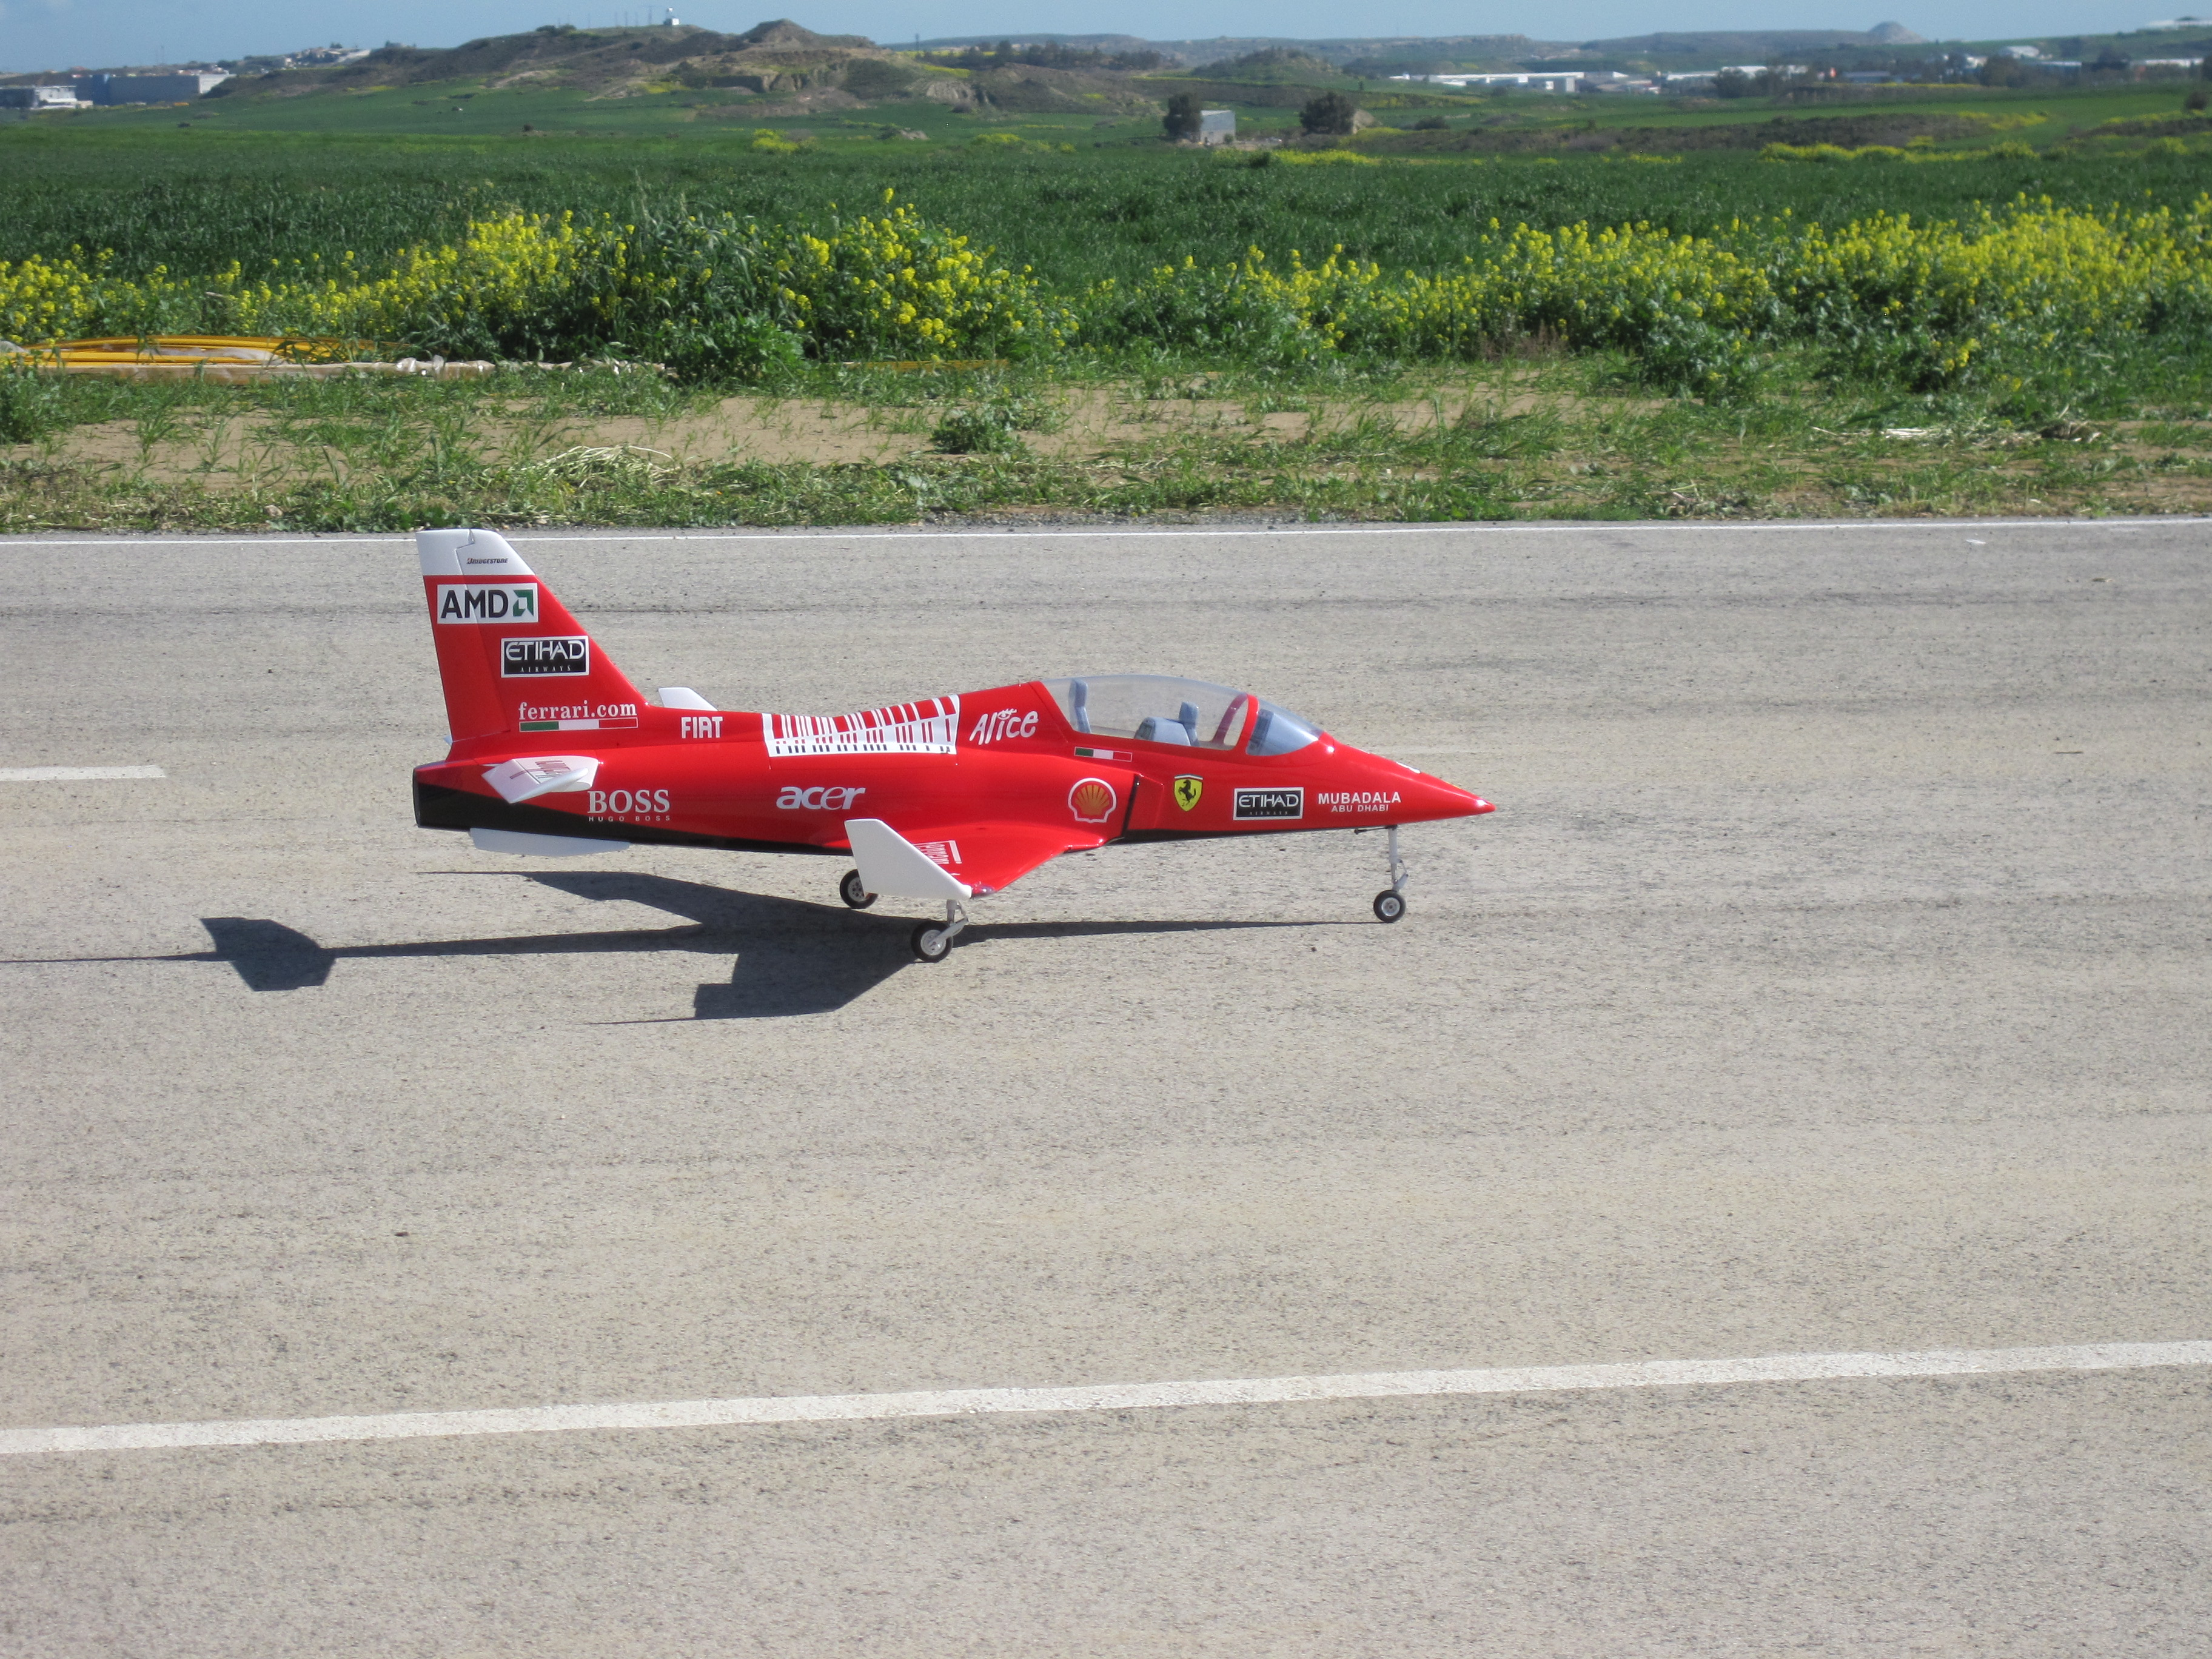 Flew the maiden flight of my Viper this morning. All went very smoothly.  Fly's as if on rails.